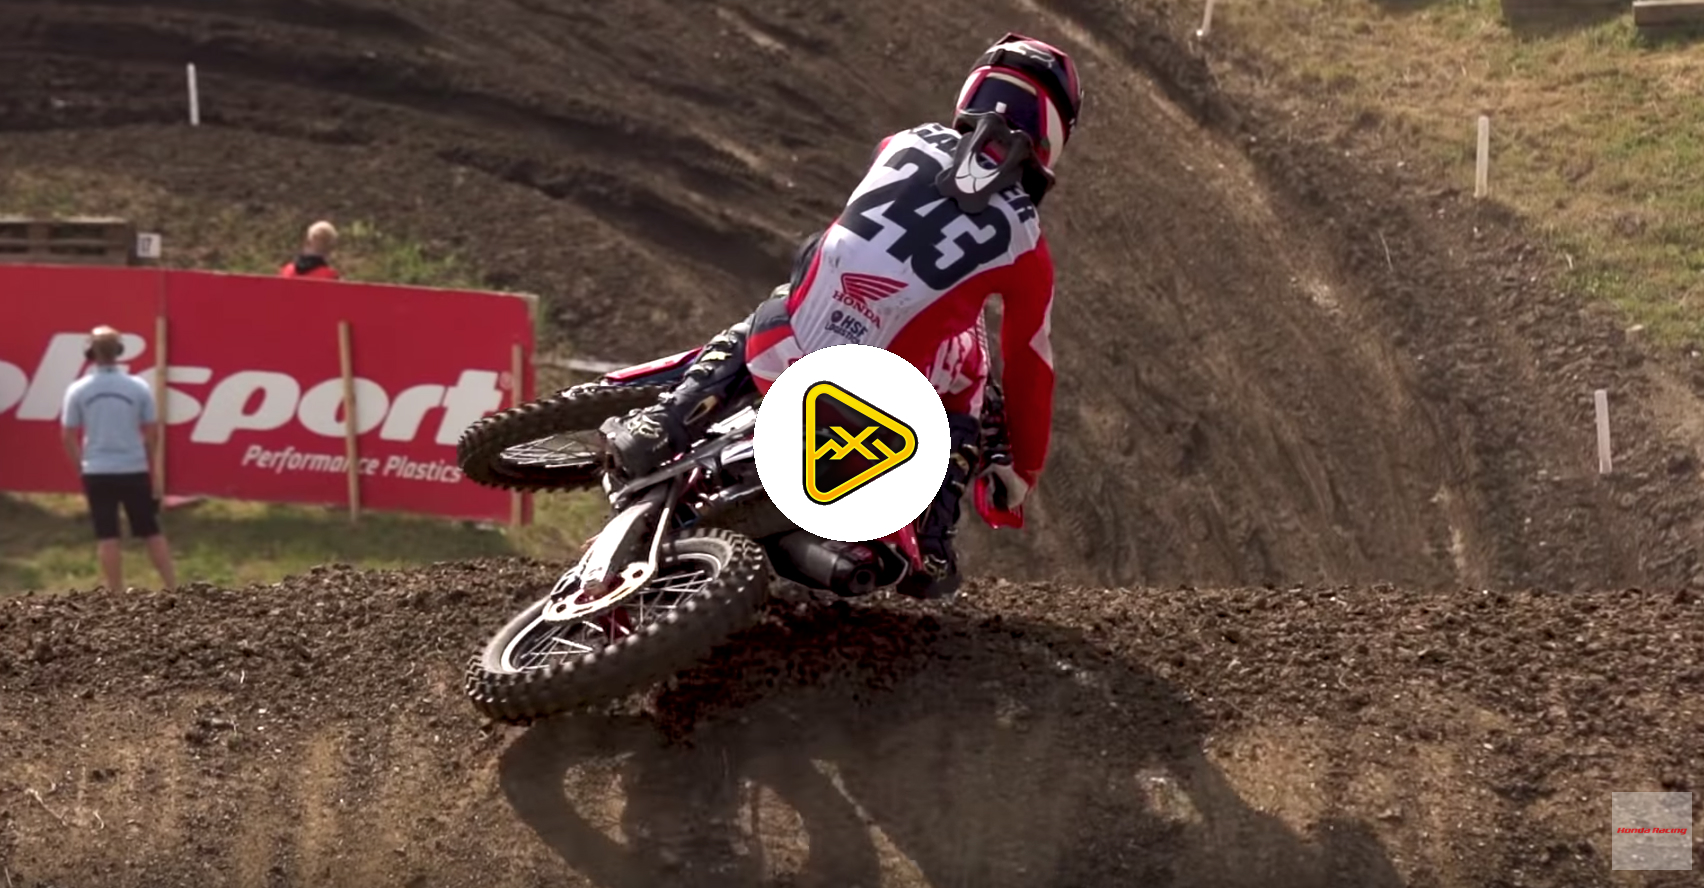 Science of Scrub Episode 3 with Tim Gajser